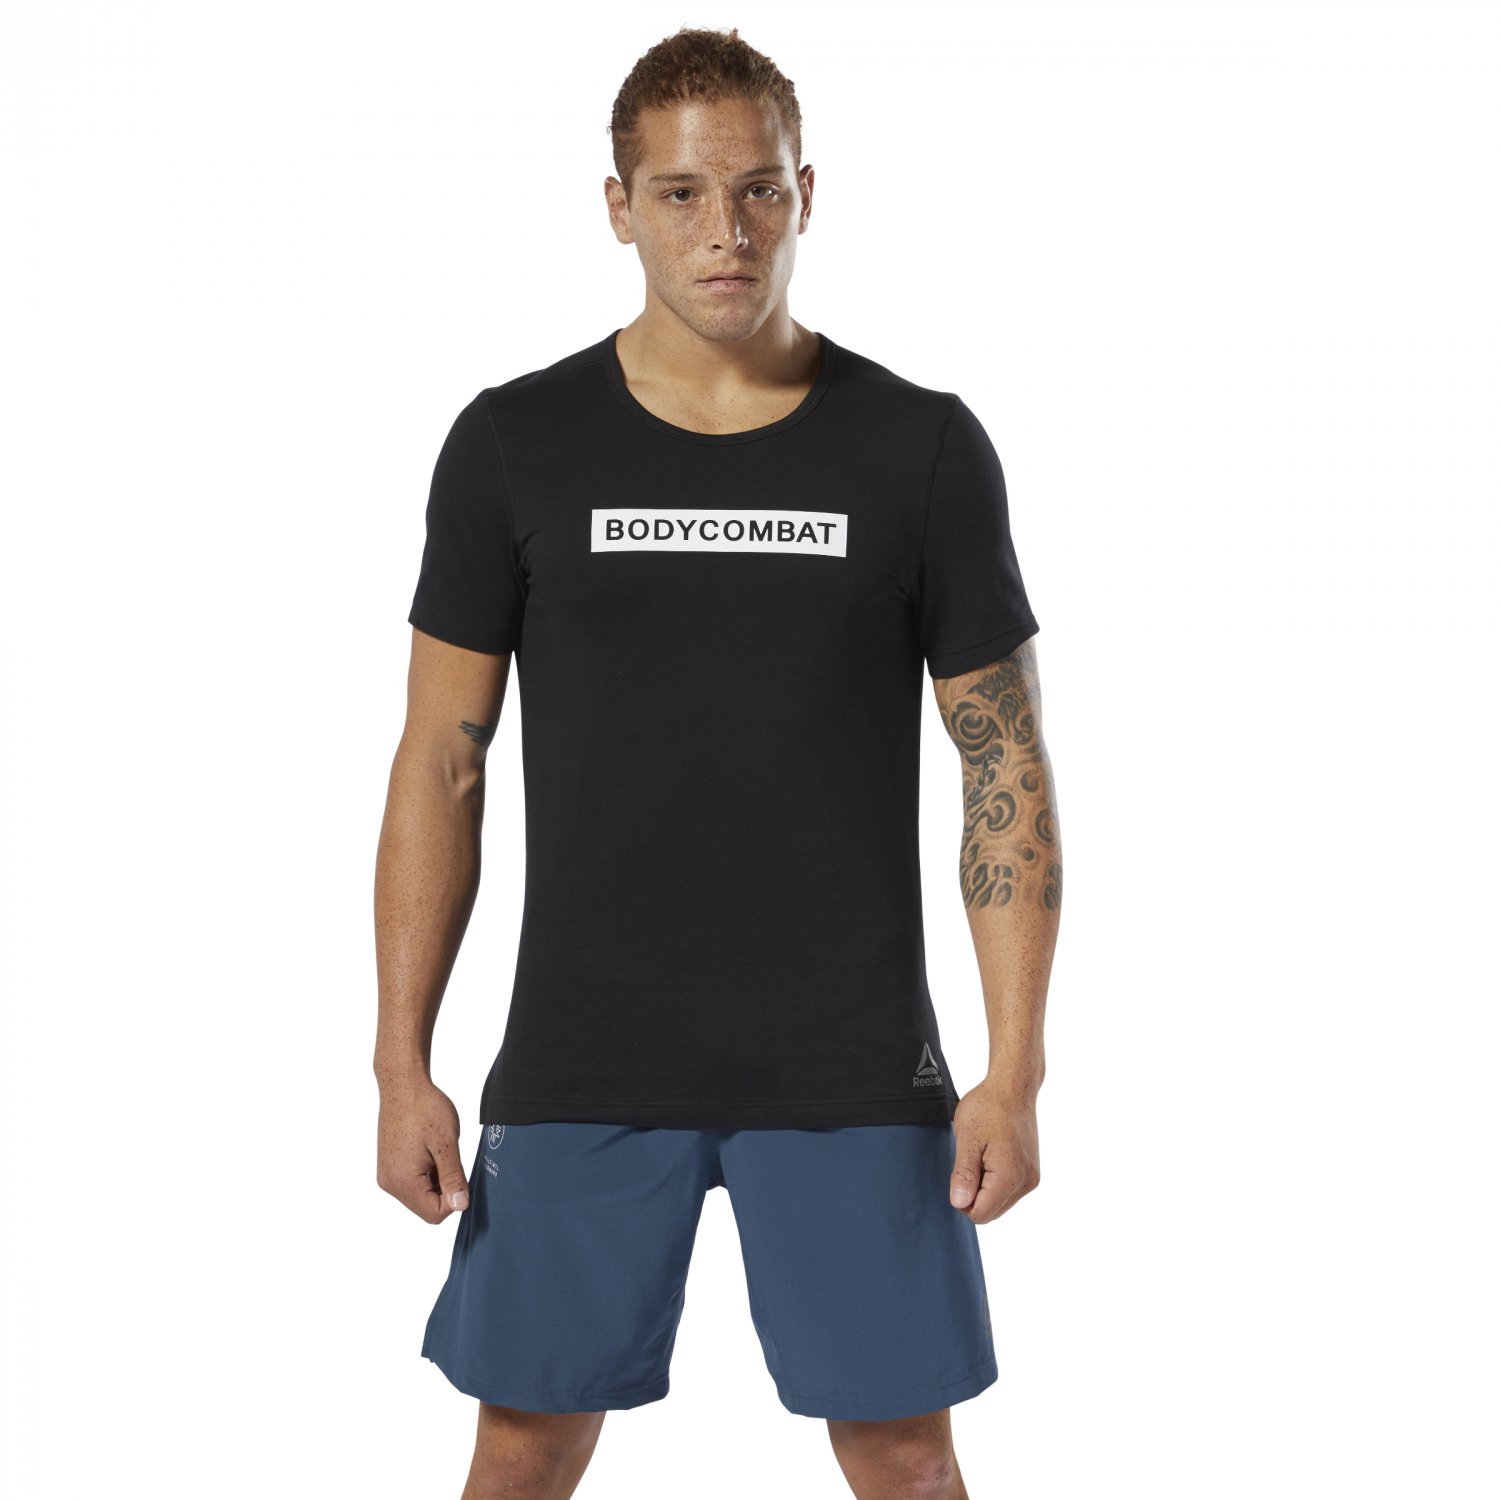 T Bodycombat Shirt Performant Les Fitness Mills Planet DWHI2E9